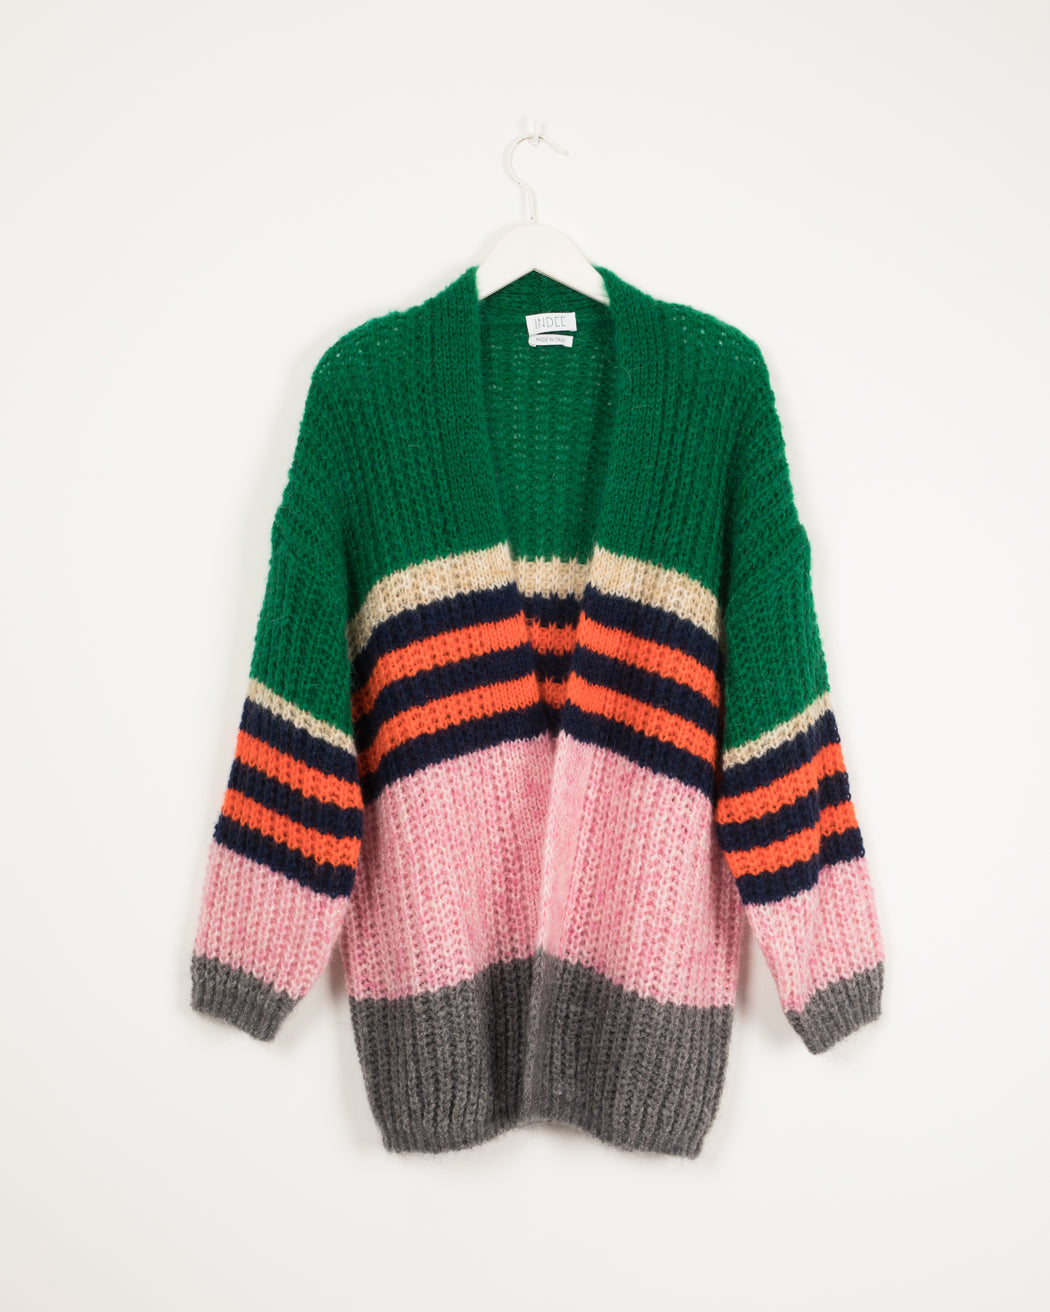 INDEE KNIT CARDIGAN